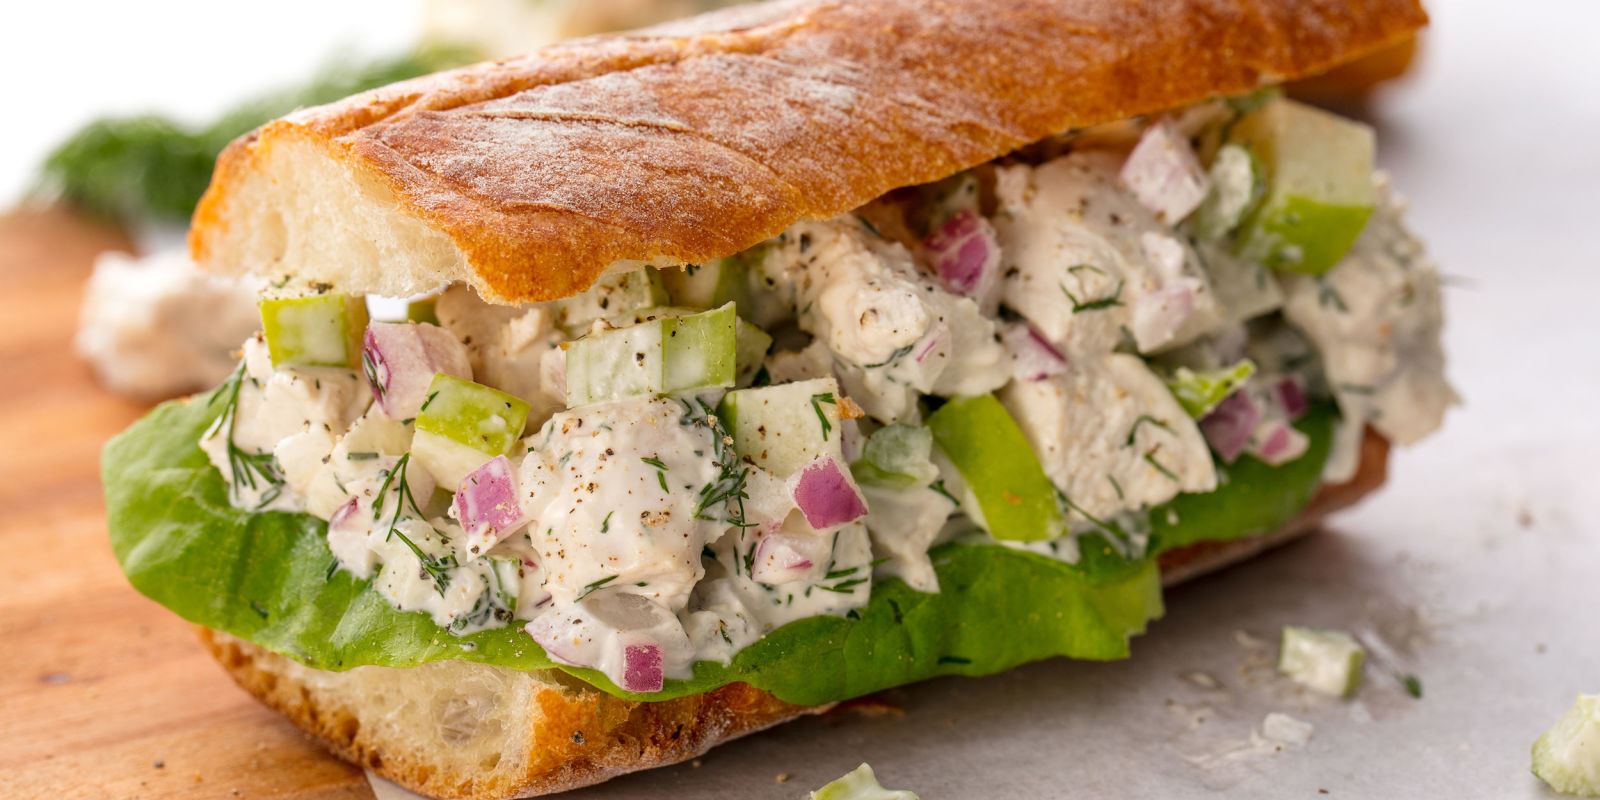 Best Chicken Salad Sandwich Recipe - How to Make a ...